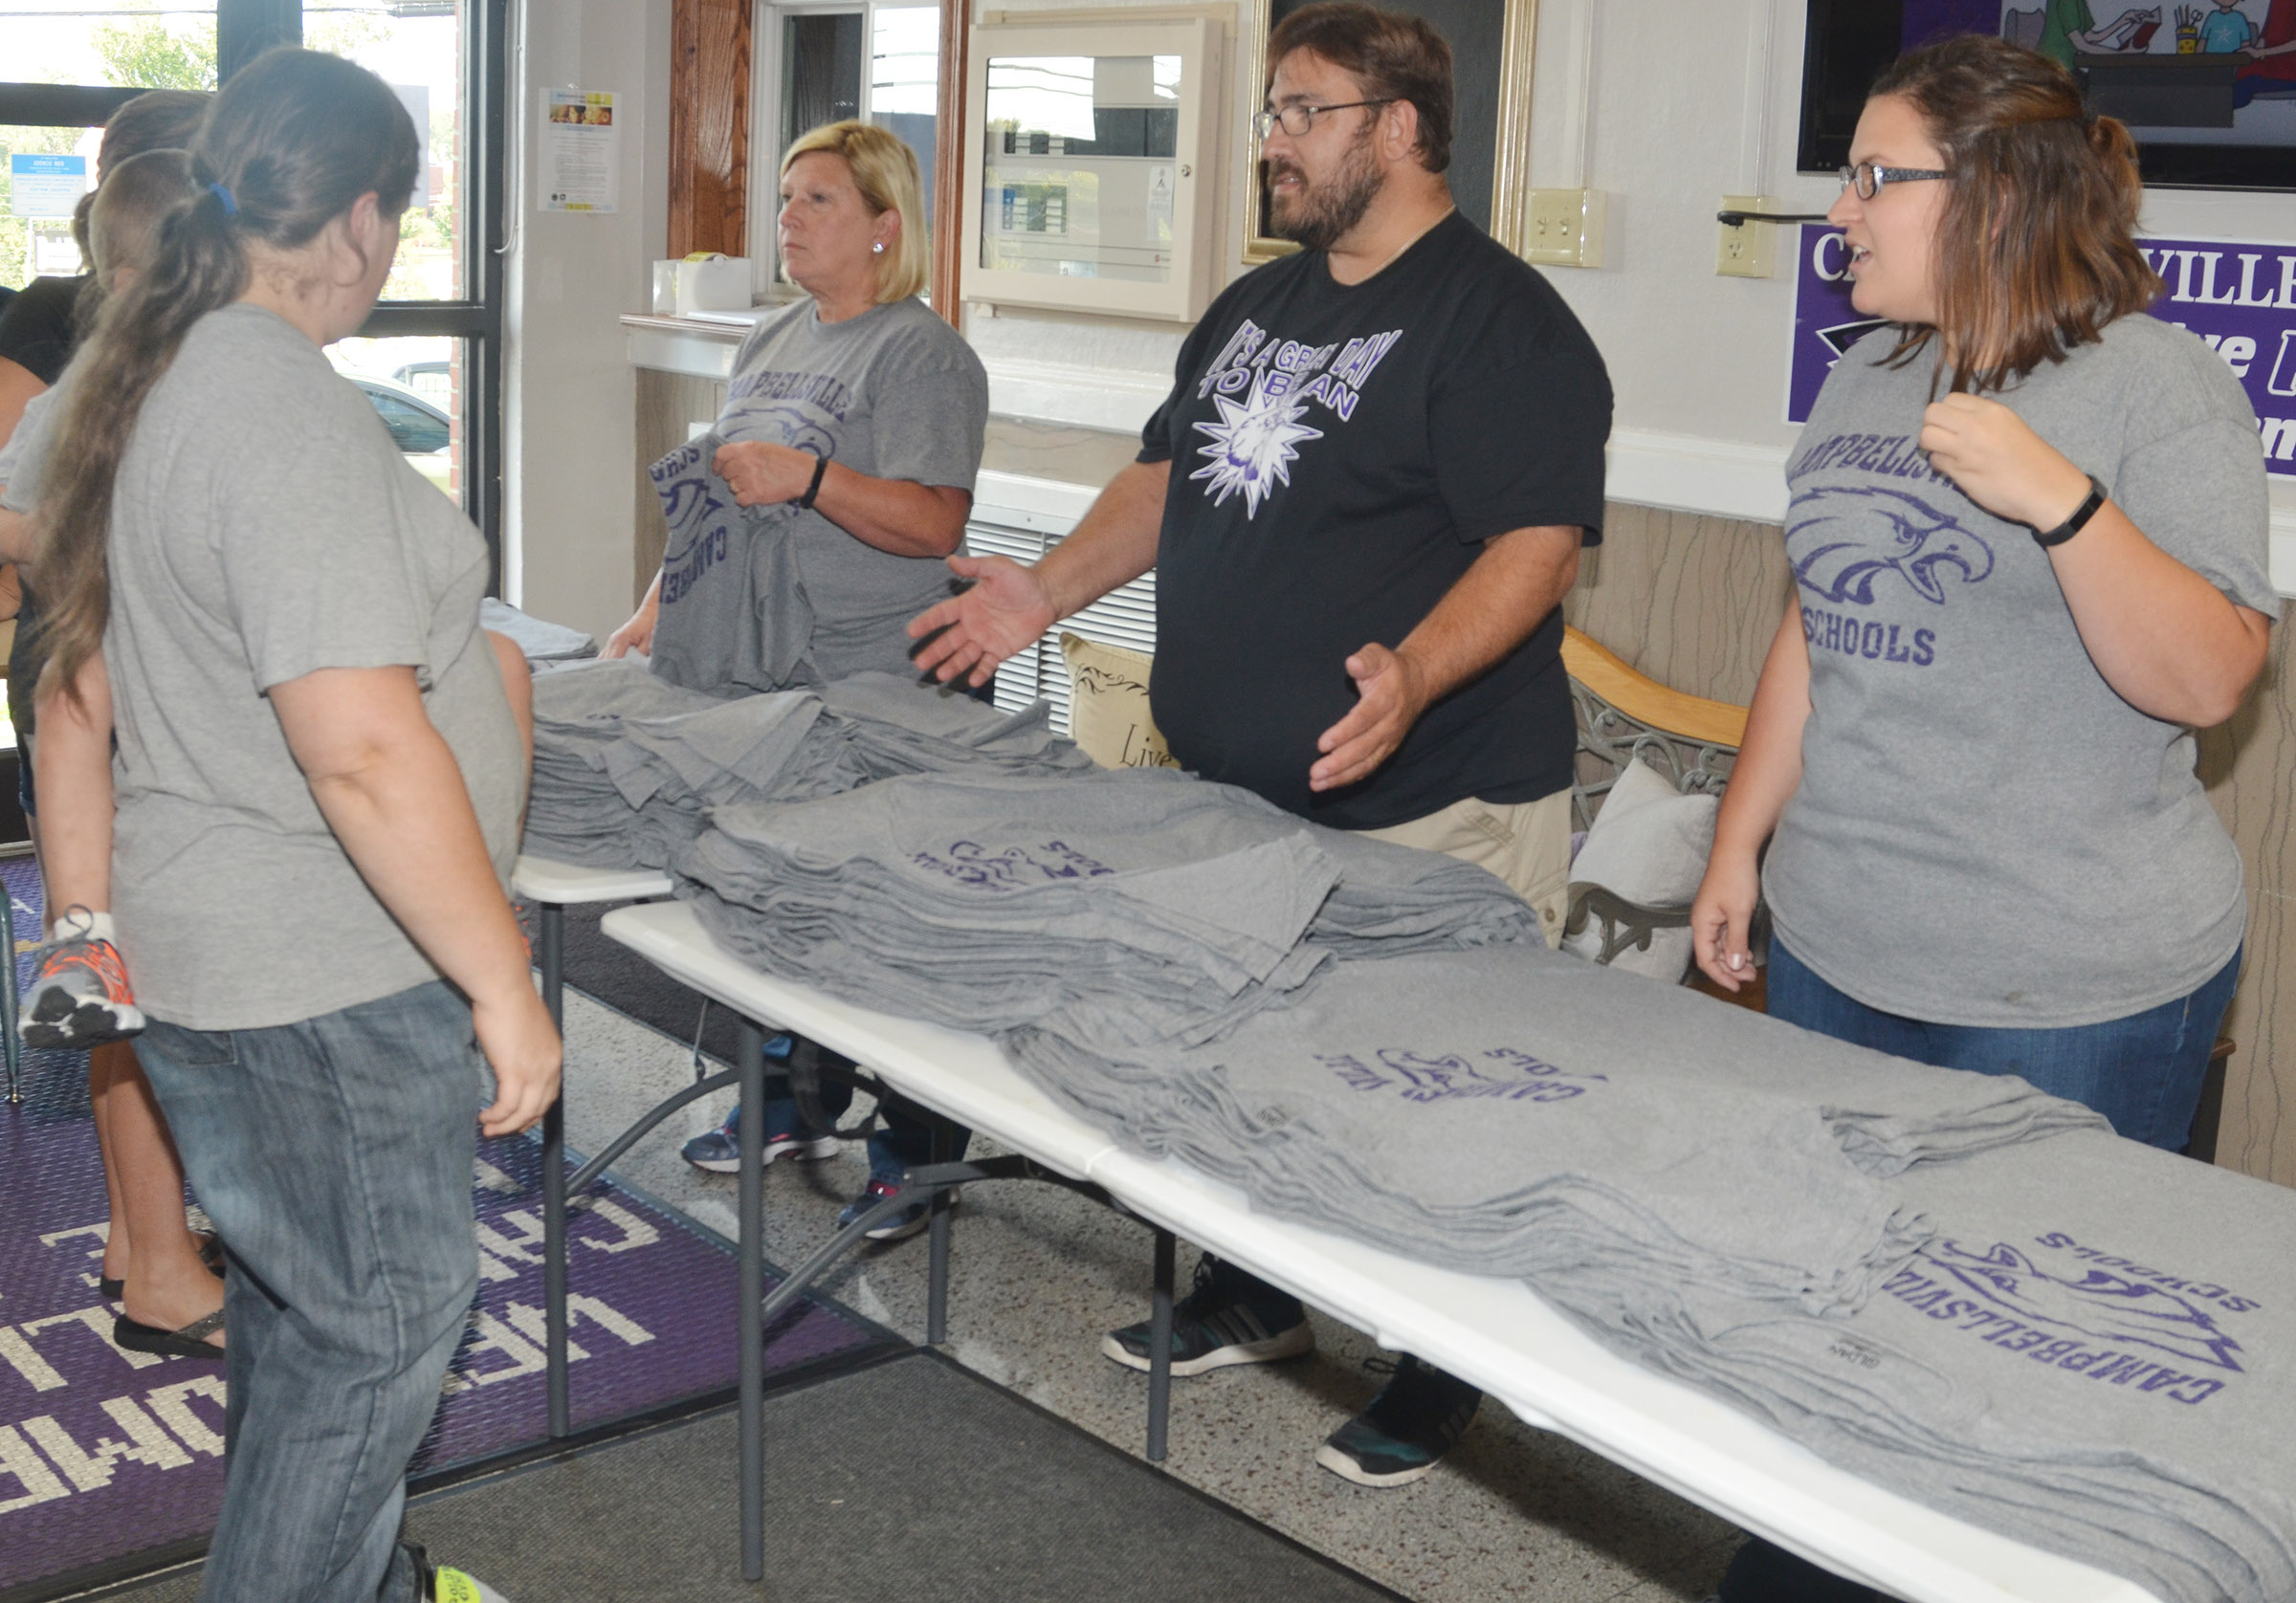 From left, CMS teacher Jan Speer, parent Mark Wiedewitsch and teacher Robbilyn Speer pass out Eagle t-shirts.